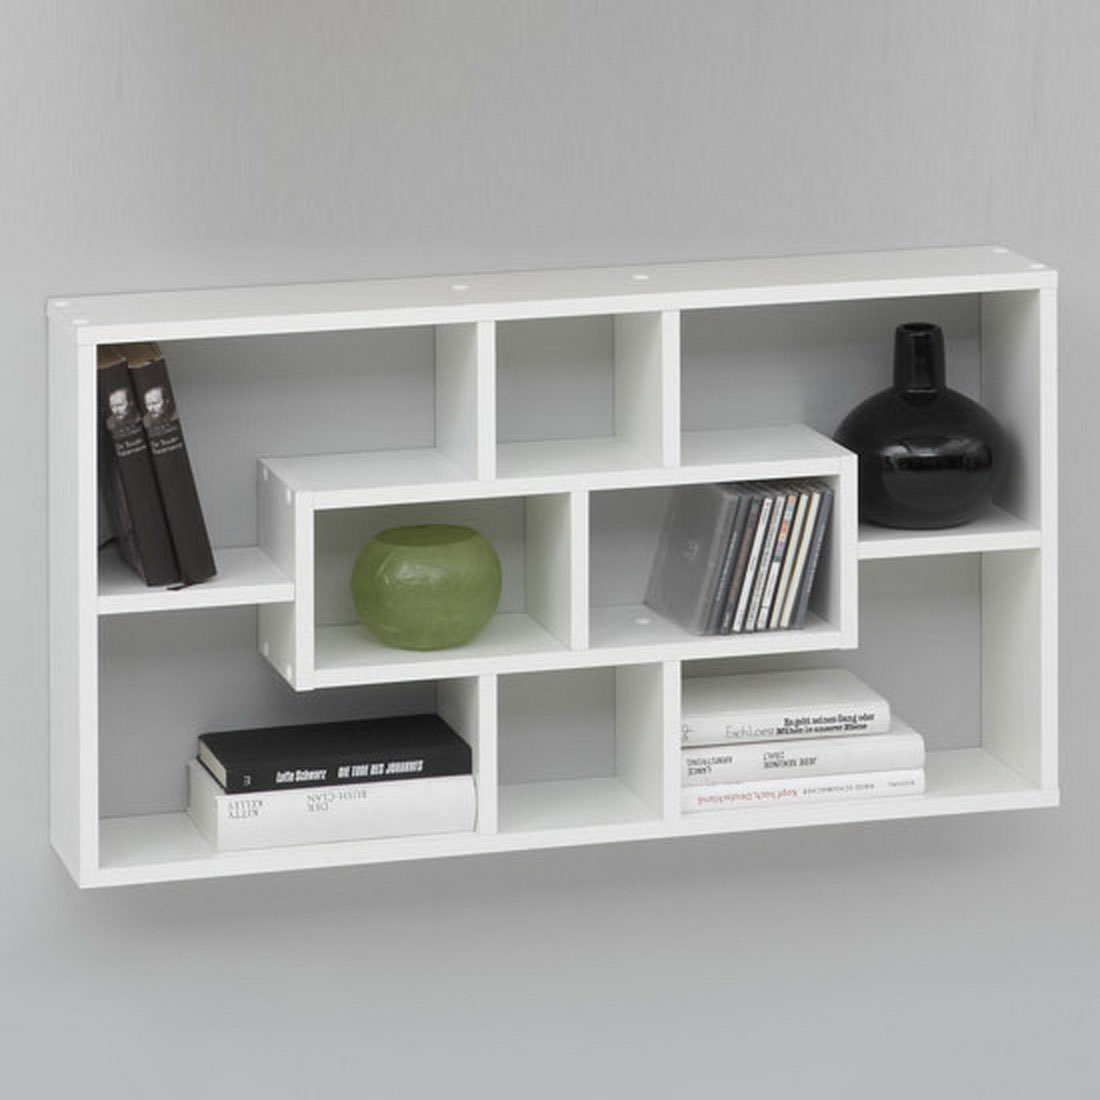 Exceptionnel Innovative Wall Mounted Bookshelves In White Color With CD Shelf On Grey  Painted Wall